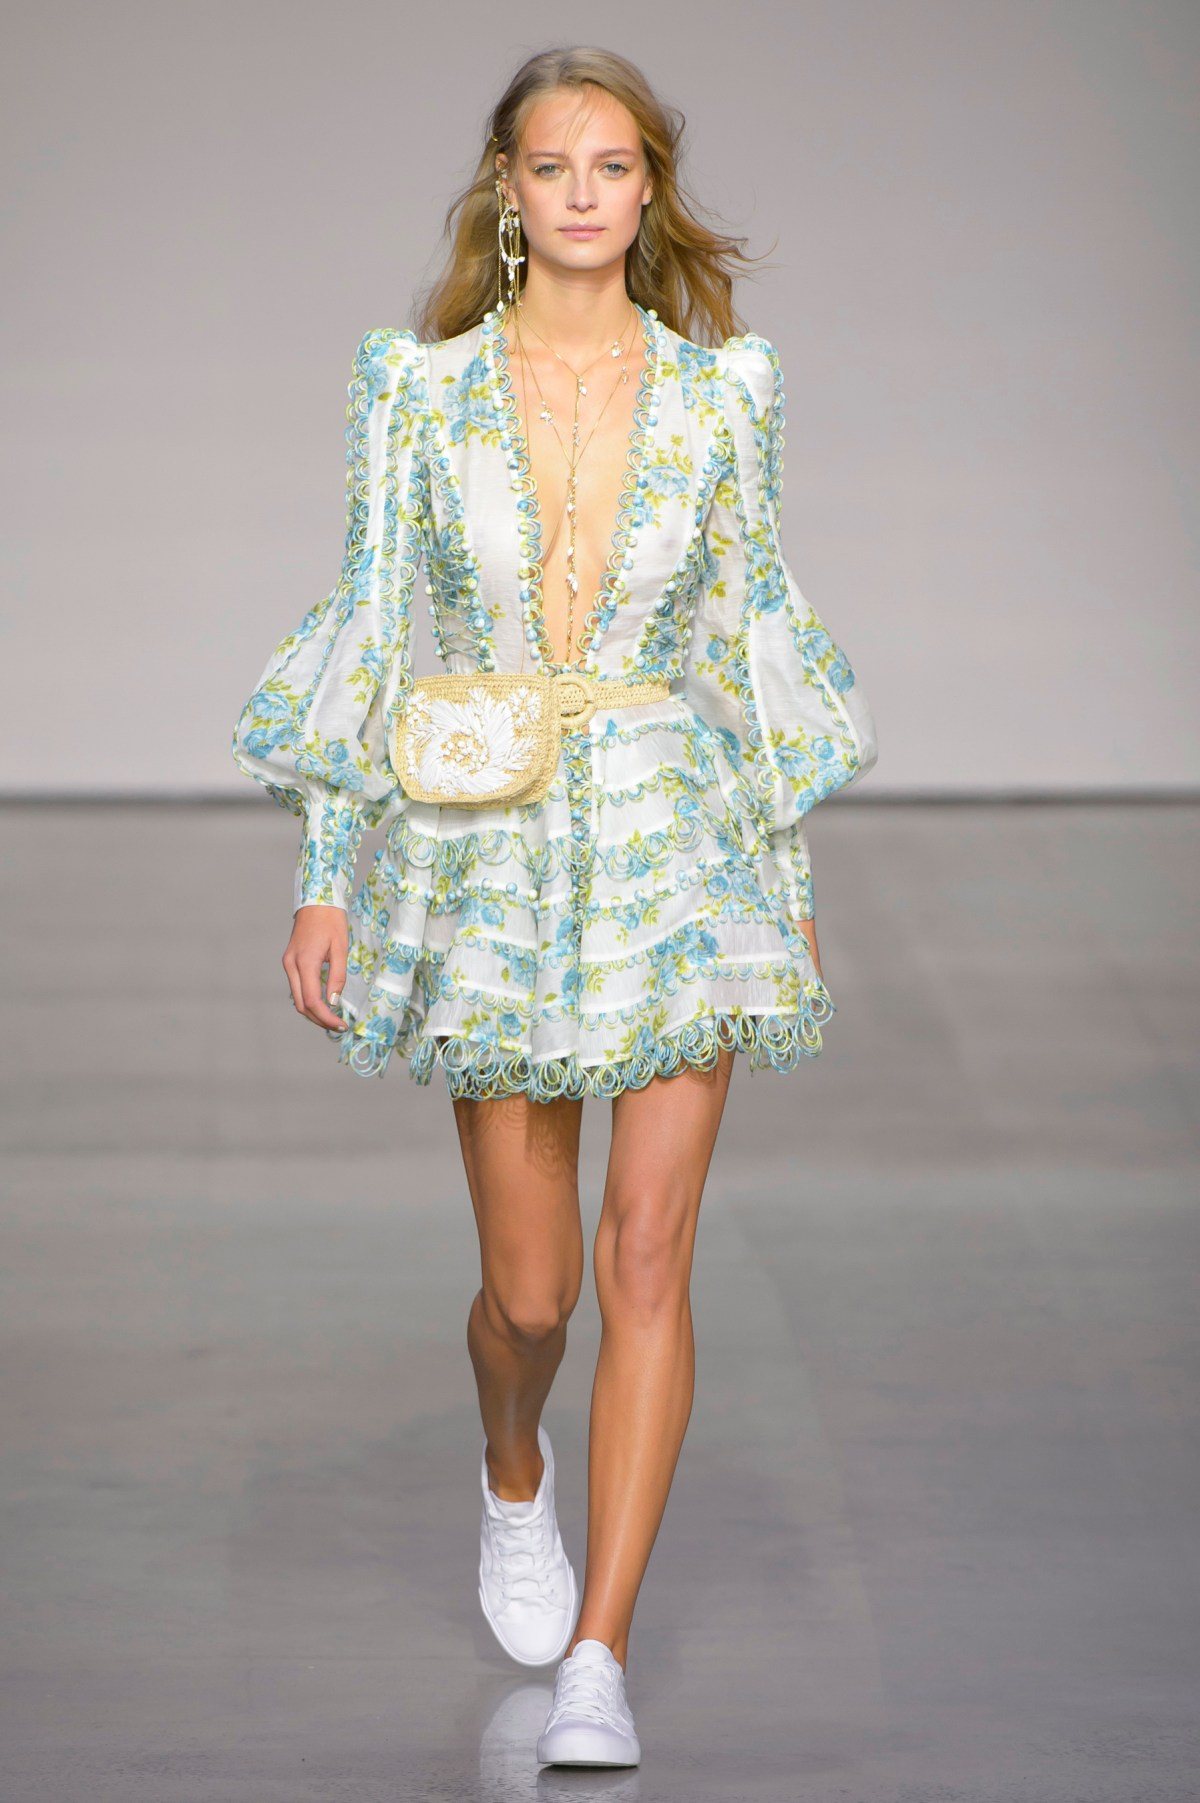 a1e94b4dfdd ZIMMERMANN Resort RTW 18 Painted Heart Runway · Zimmermann Spring 2018  Fashion Show The Impression